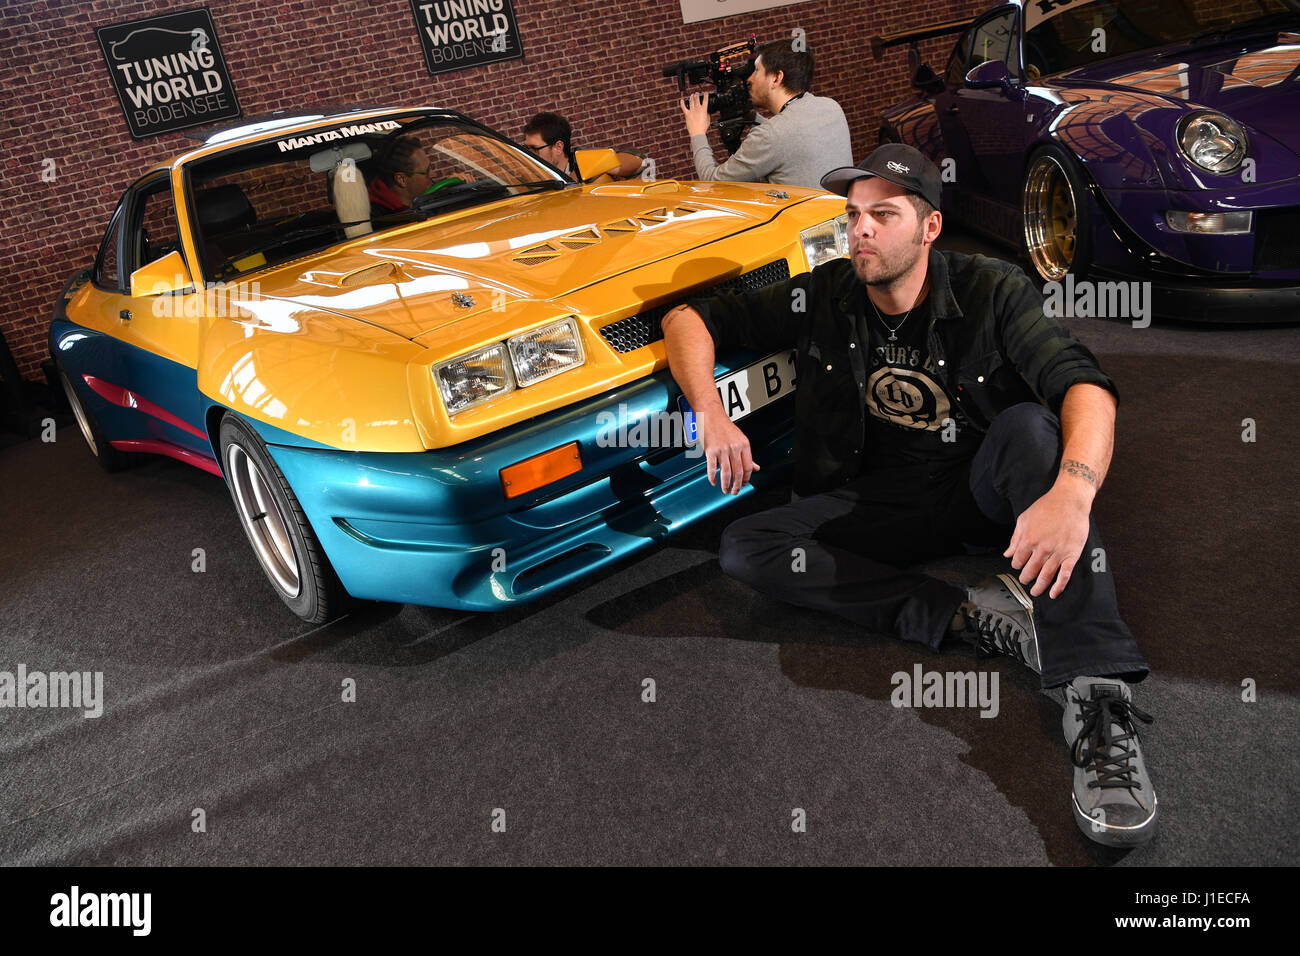 opel manta car stock photos opel manta car stock images alamy. Black Bedroom Furniture Sets. Home Design Ideas